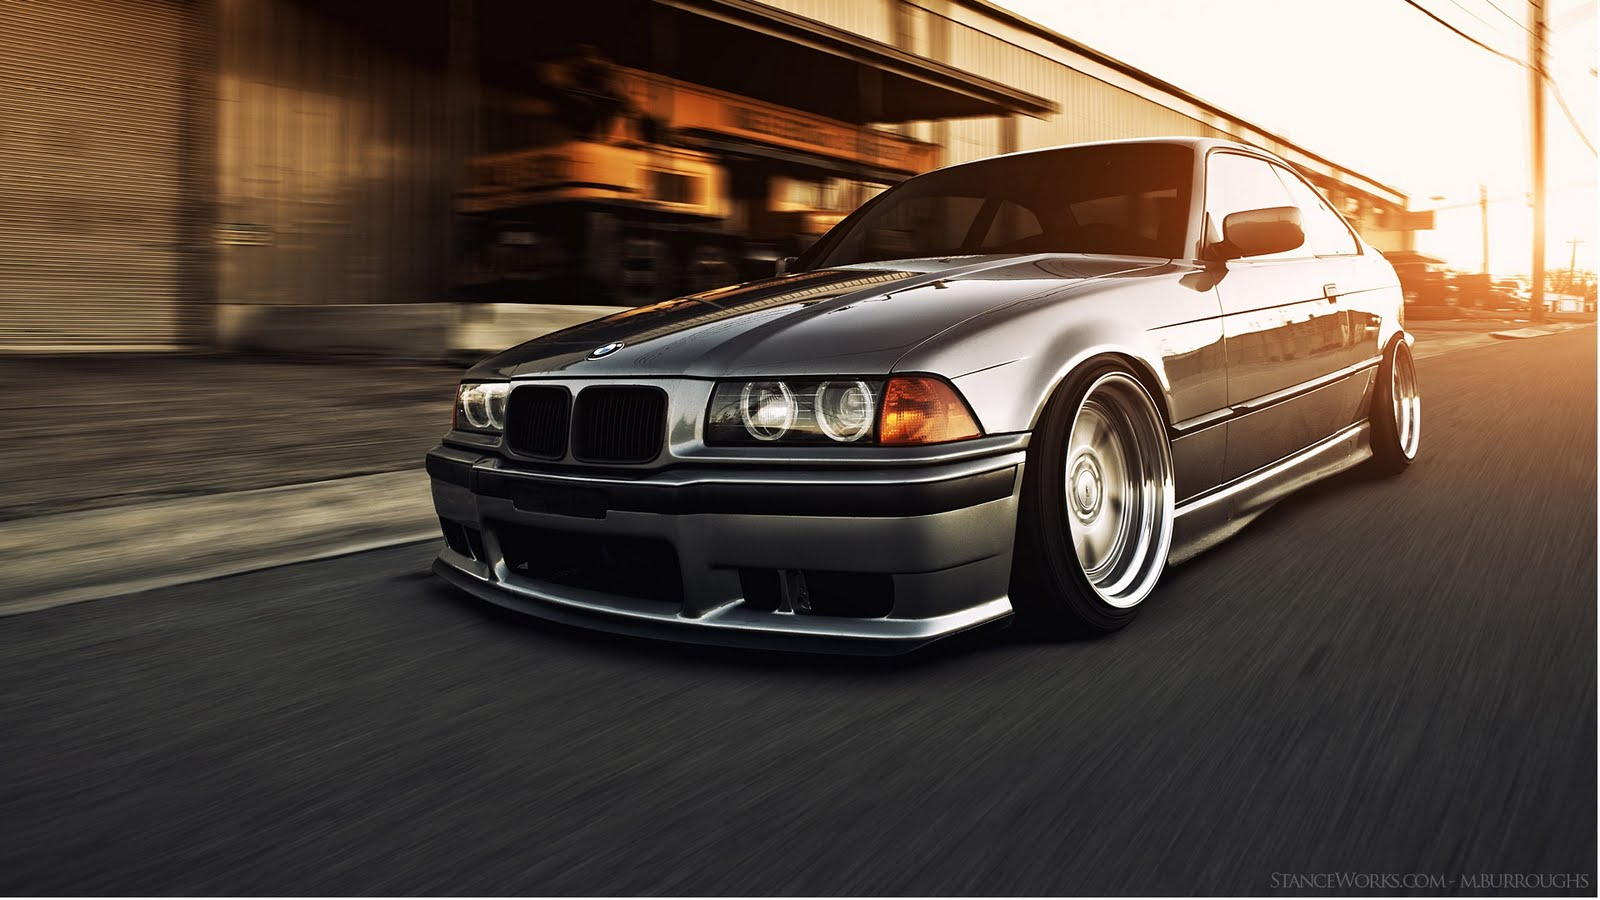 Bmw Wallpaper 1920x1080 Wallpapersafari